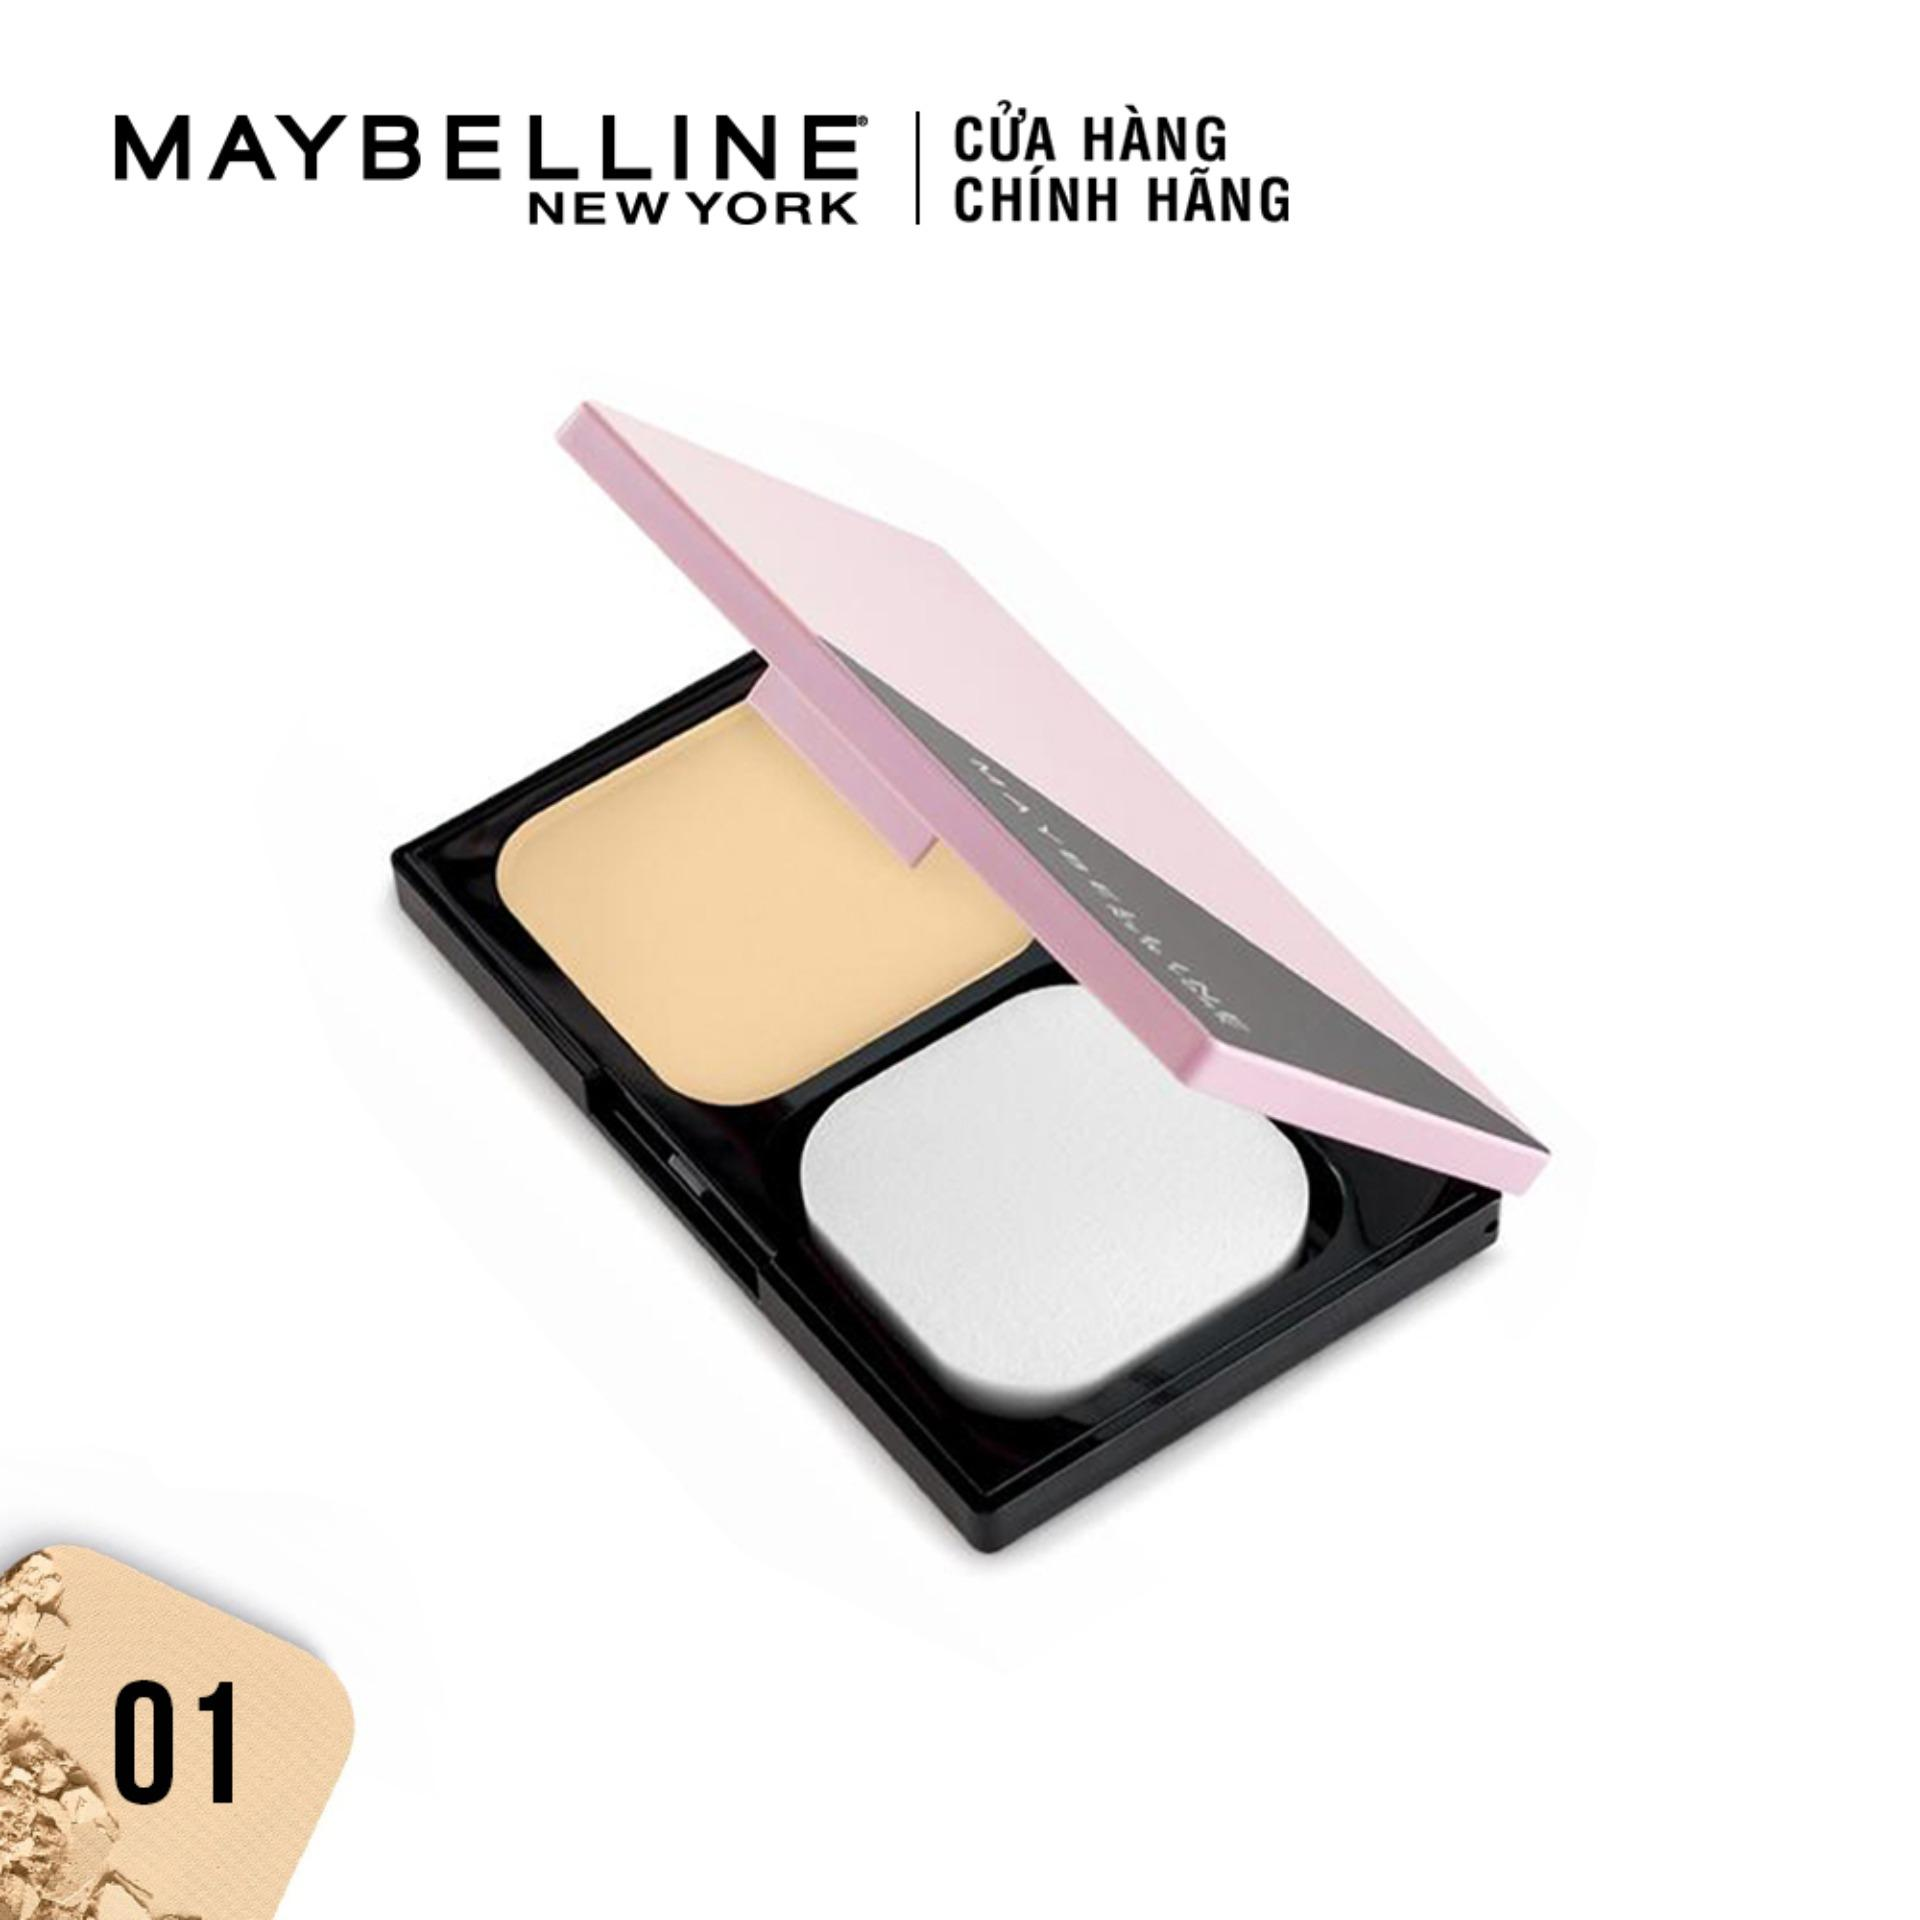 Phấn phủ kiềm dầu siêu mịn 5 trong 1 Clear Smooth All In One Powder Foundation Maybelline New York 9g